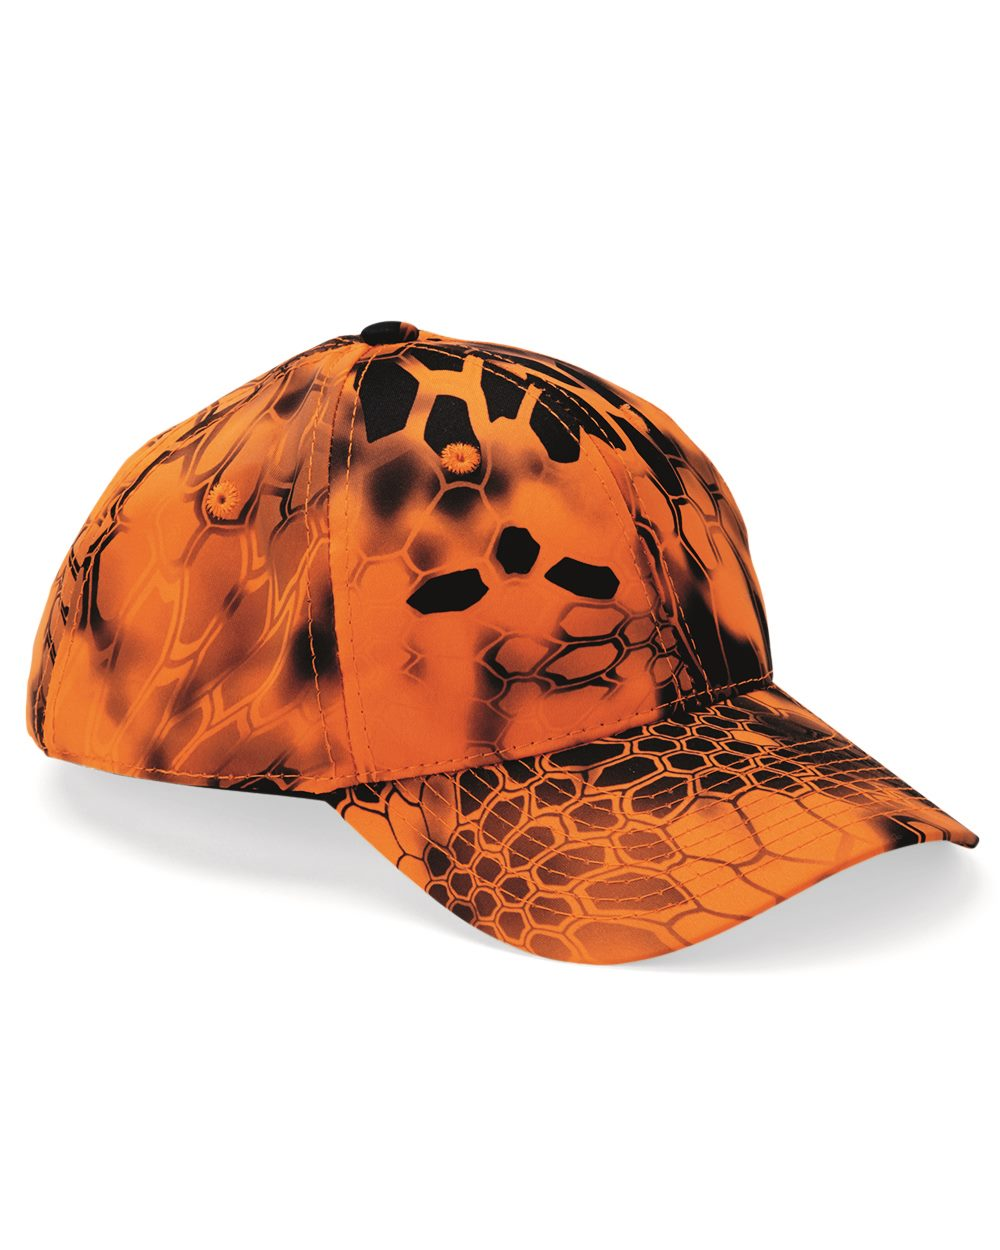 Outdoor Cap PFC100 - Platinum Series Performance Camo Cap